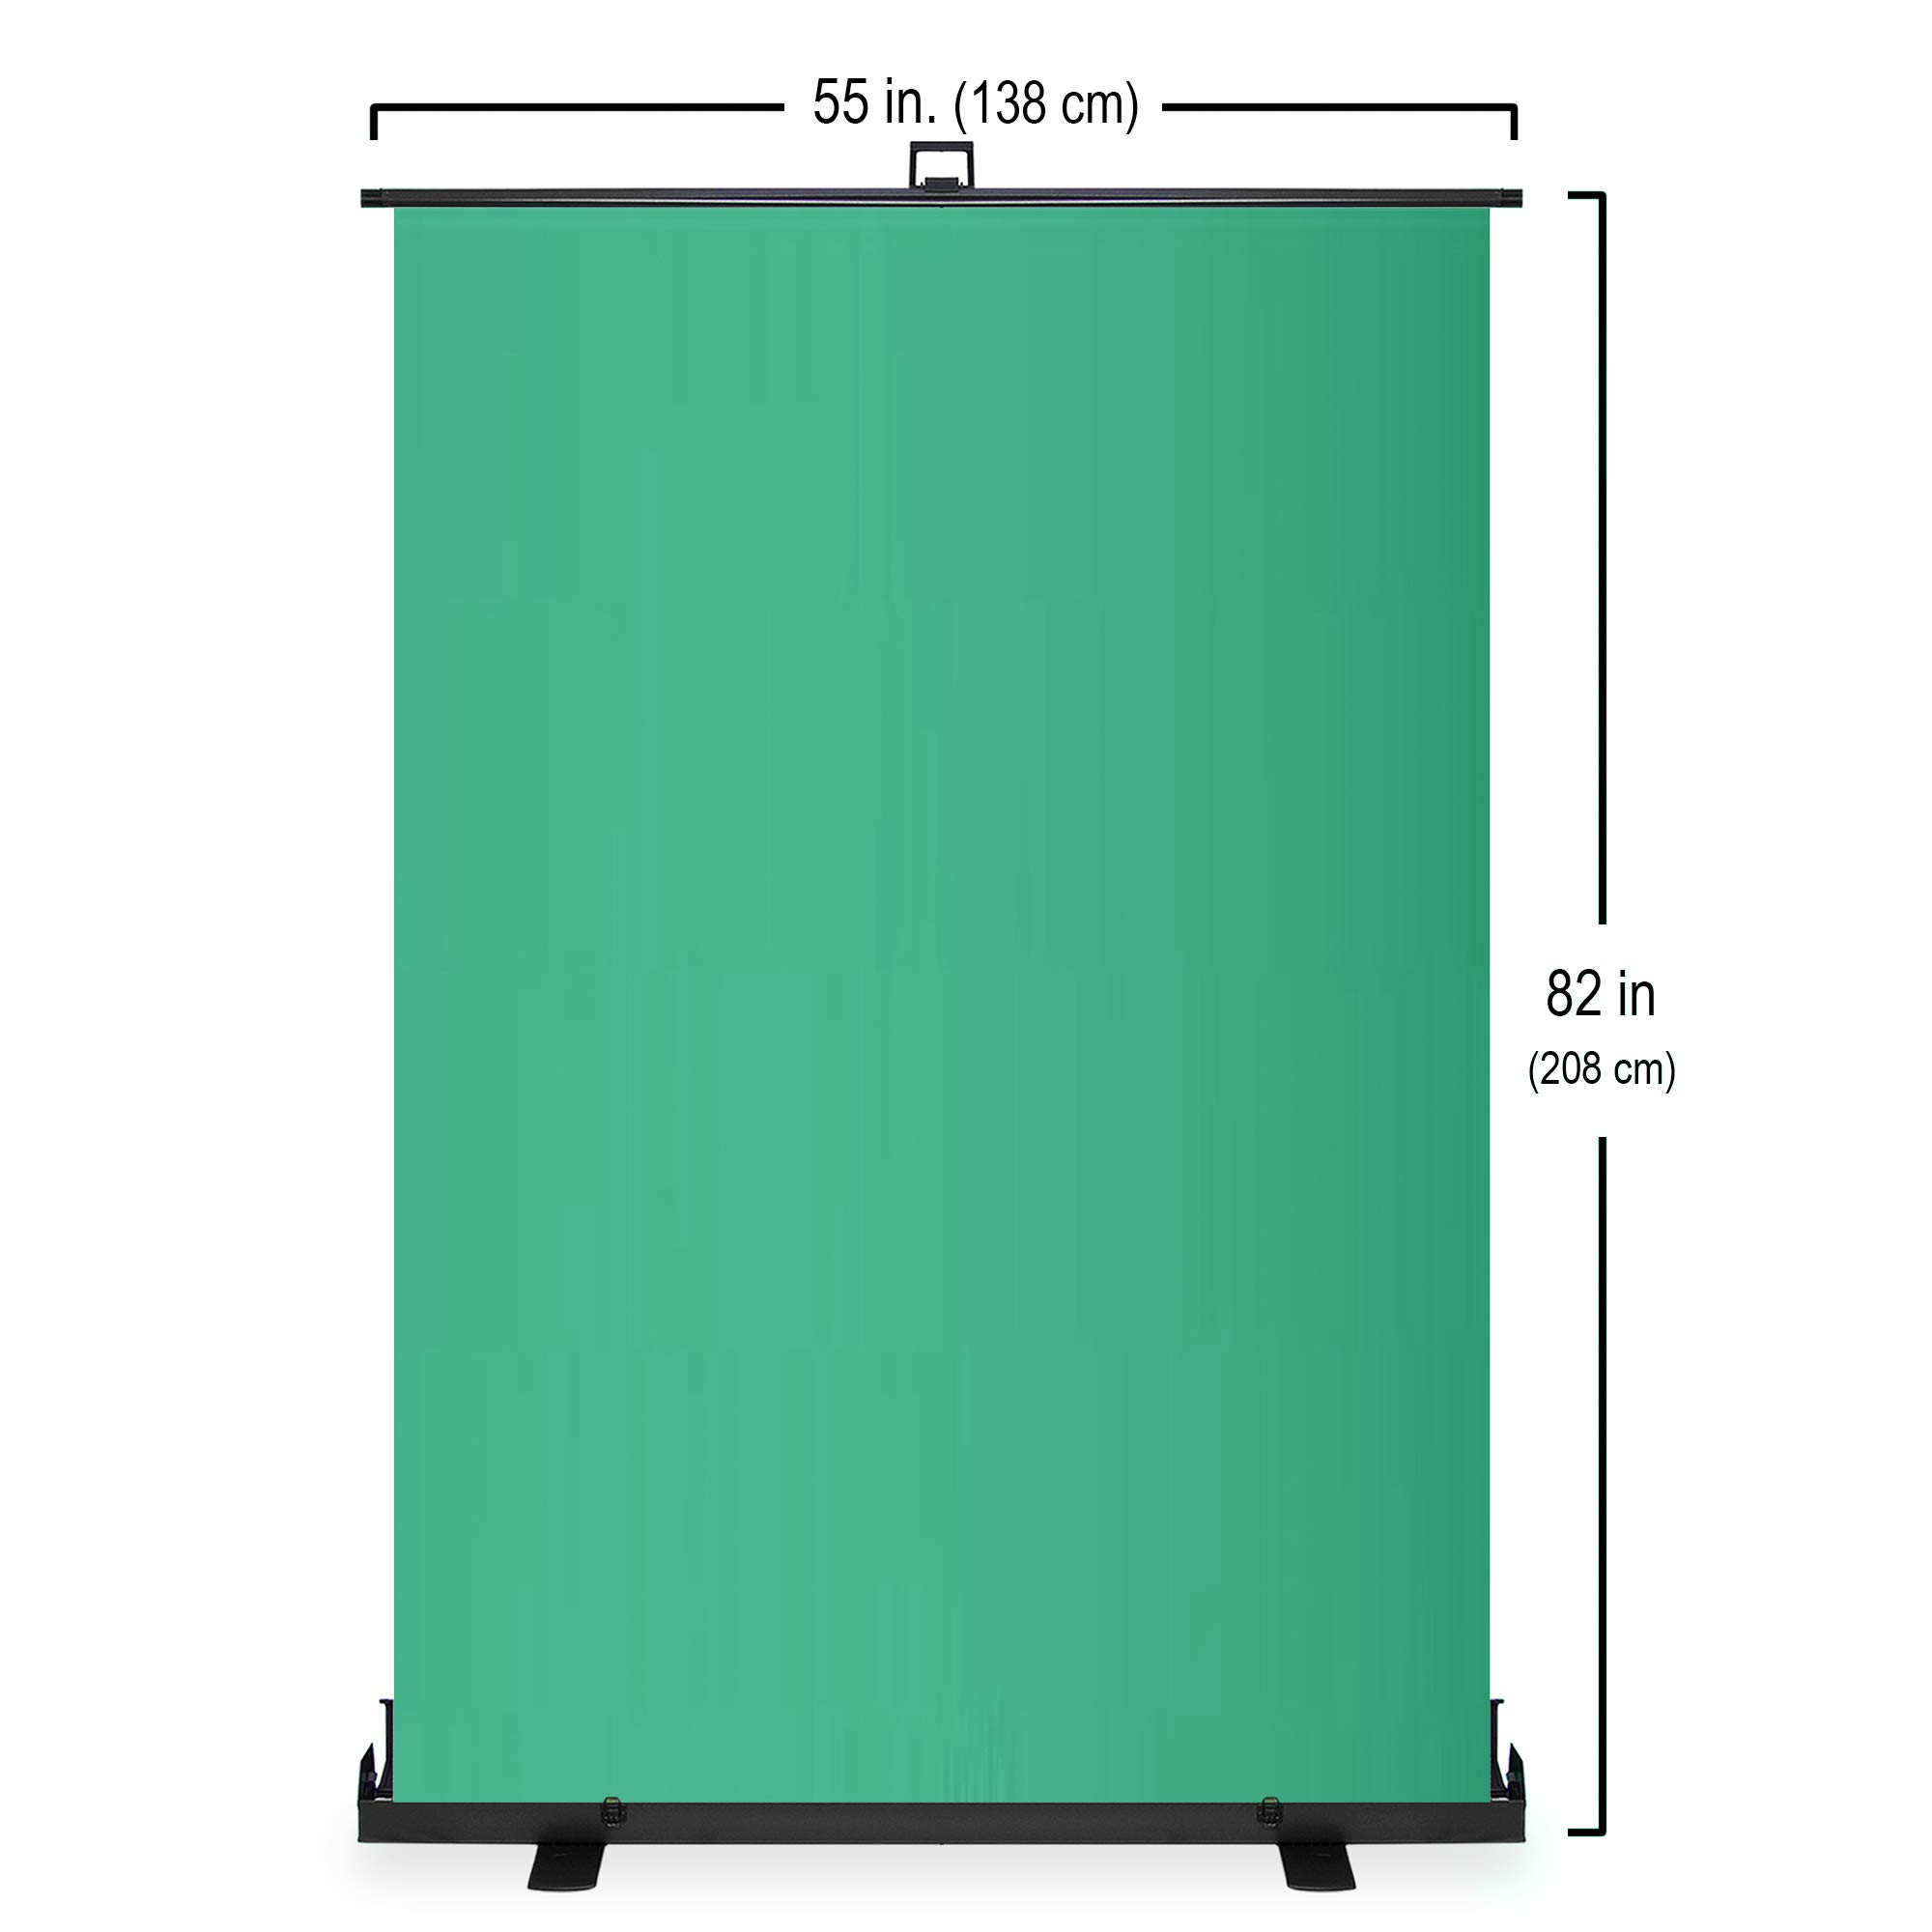 KHOMO GEAR Jumbo Size 55'' x 82'' Green Screen Collapsible Pull-Up Extra Large Streaming Portable Backdrop Setup with Auto-Locking Frame by KHOMO GEAR (Image #5)